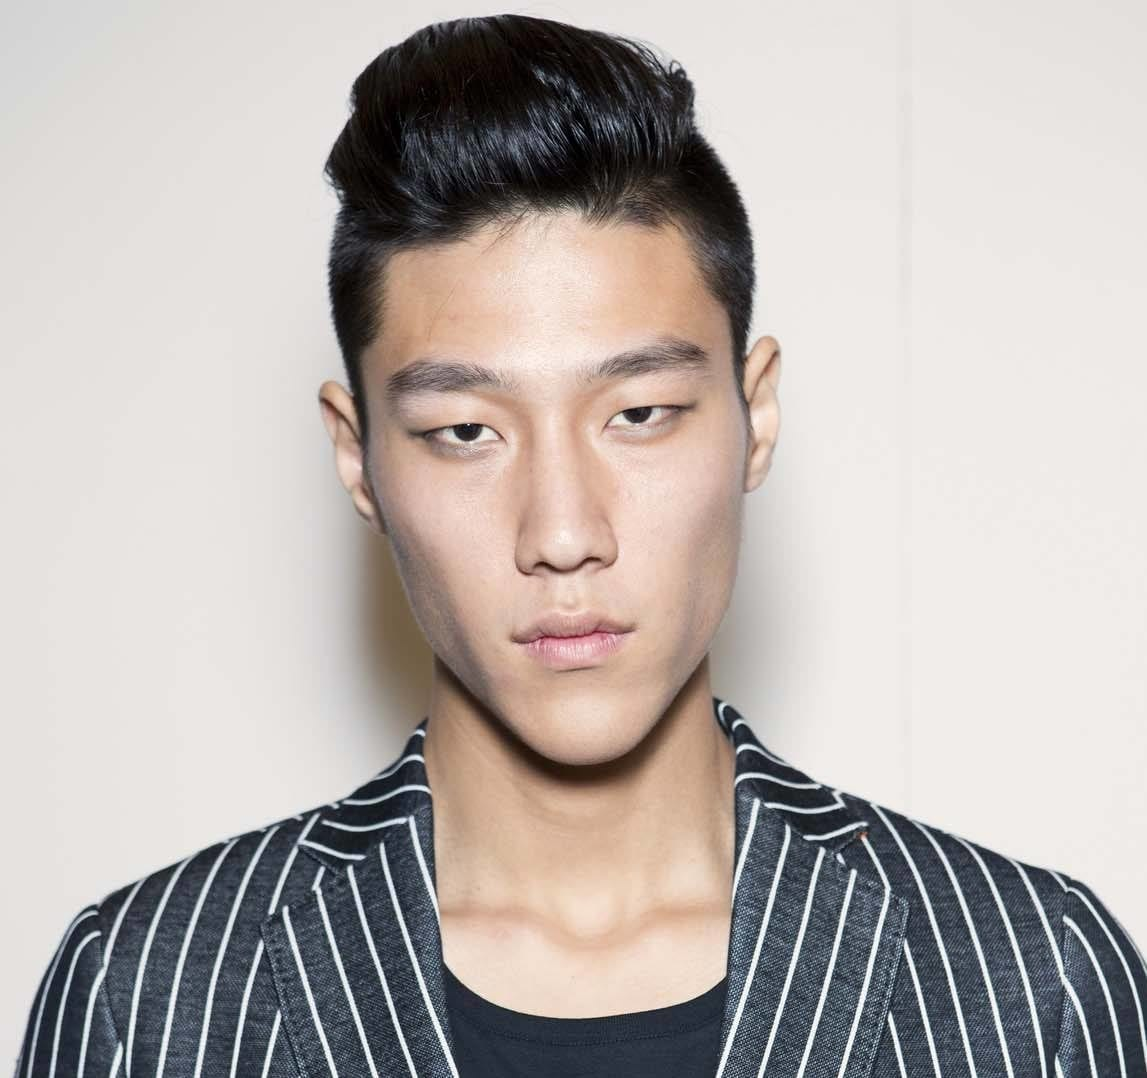 The Korean men's hairstyles you'll want to copy now